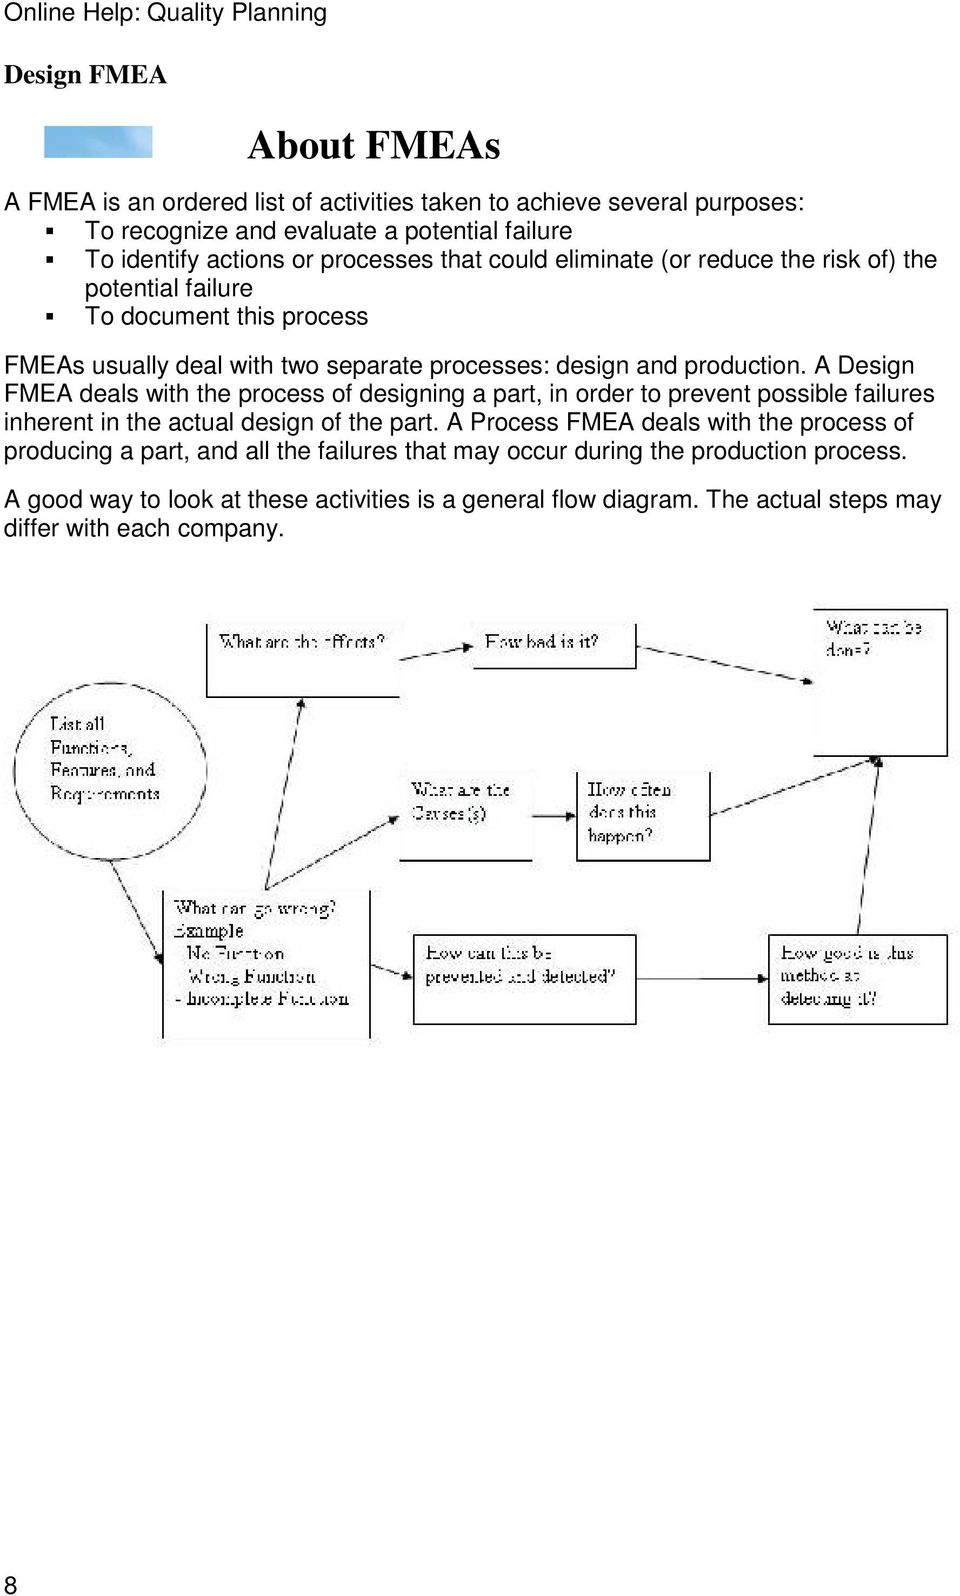 A Design FMEA deals with the process of designing a part, in order to prevent possible failures inherent in the actual design of the part.